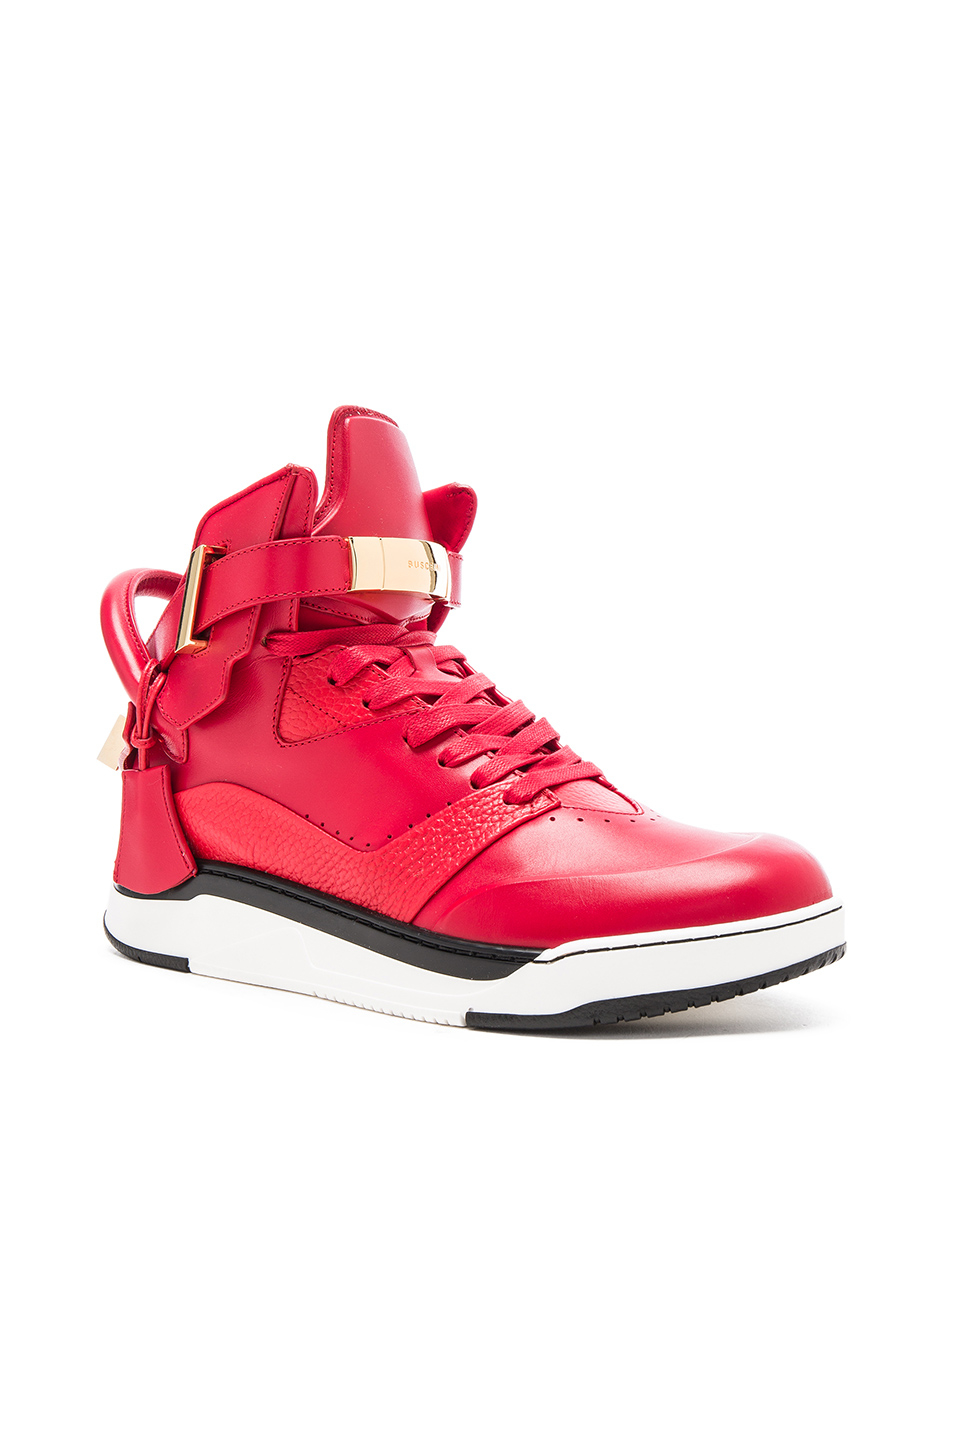 Red Buscemi Shoes